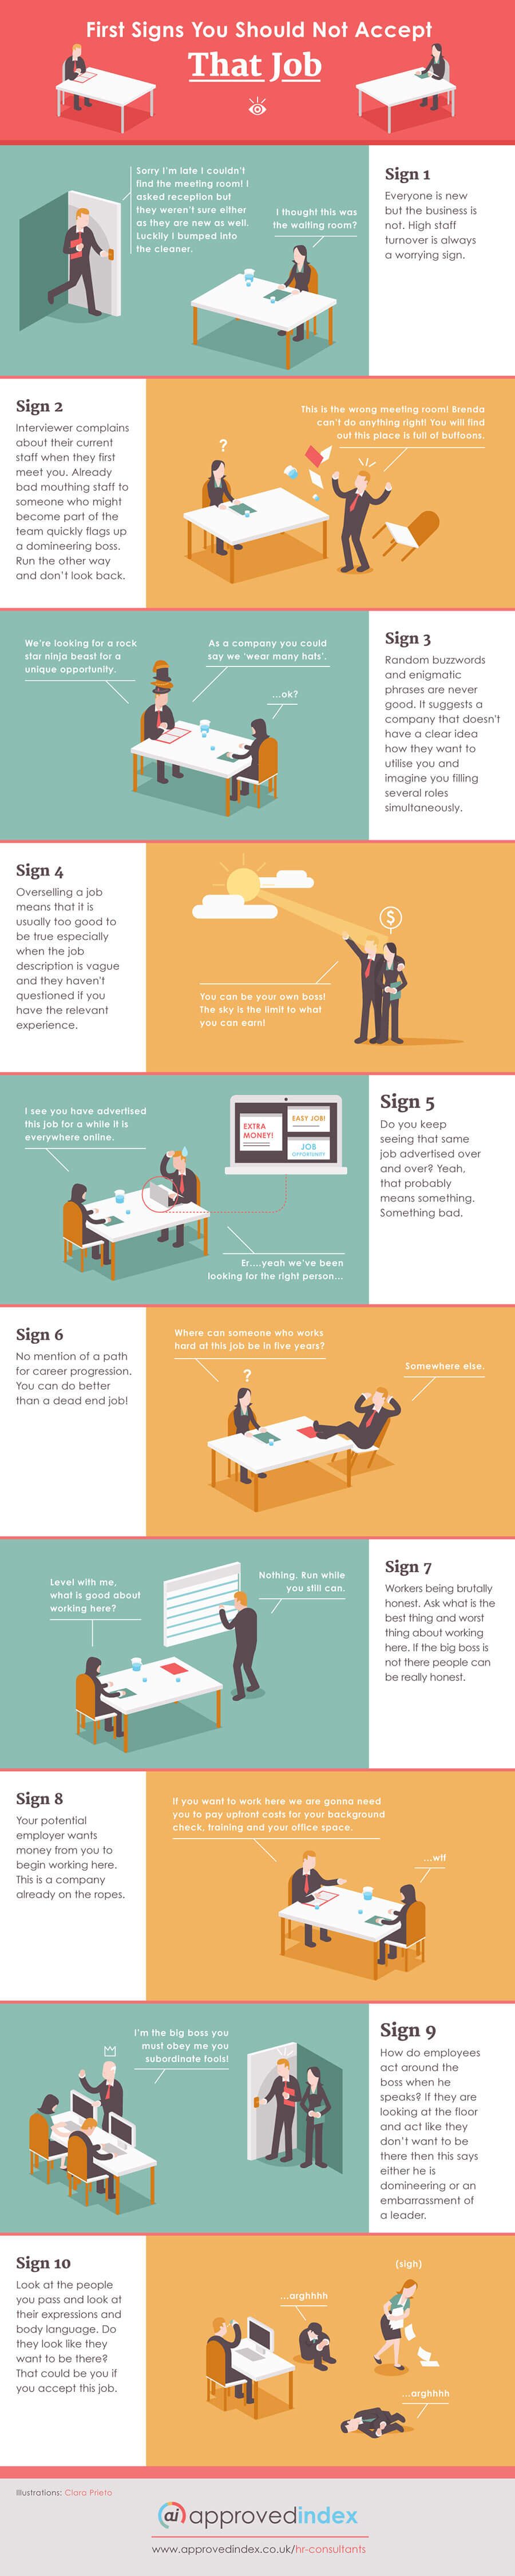 Infographic: First signs you should not accept that job